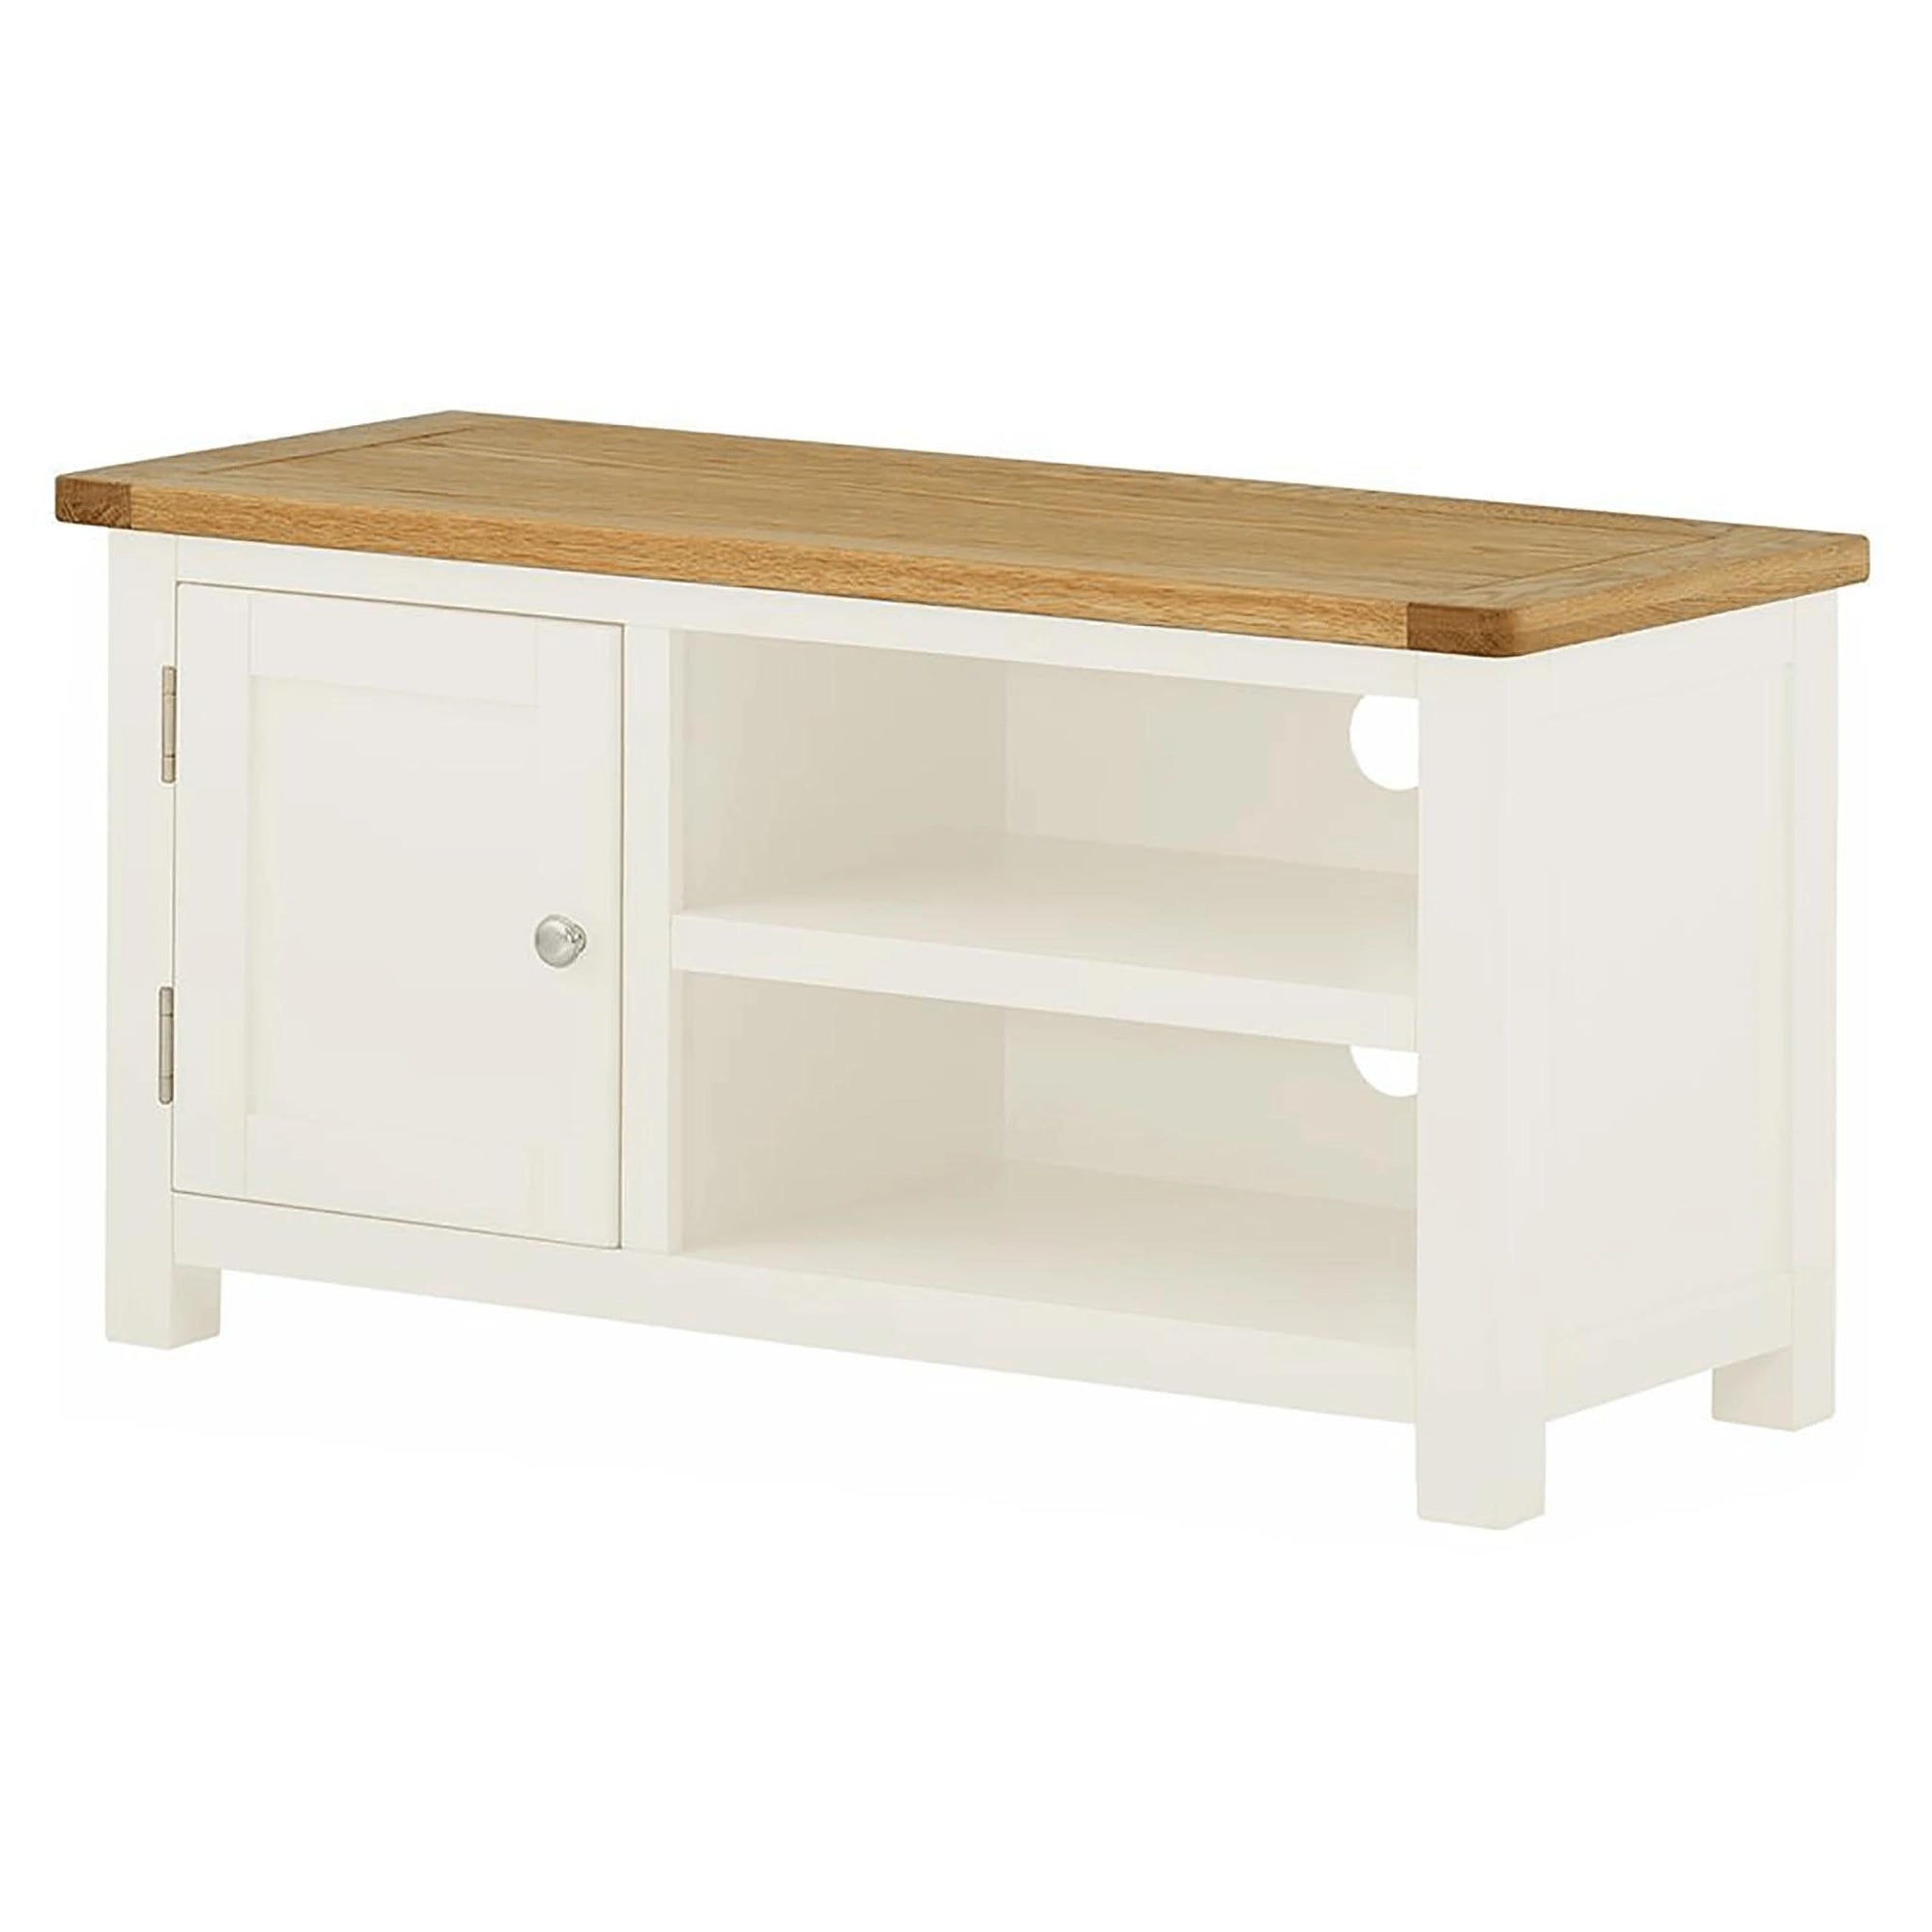 The Padstow White Small Wooden TV Stand Storage Unit from Roseland Furniture